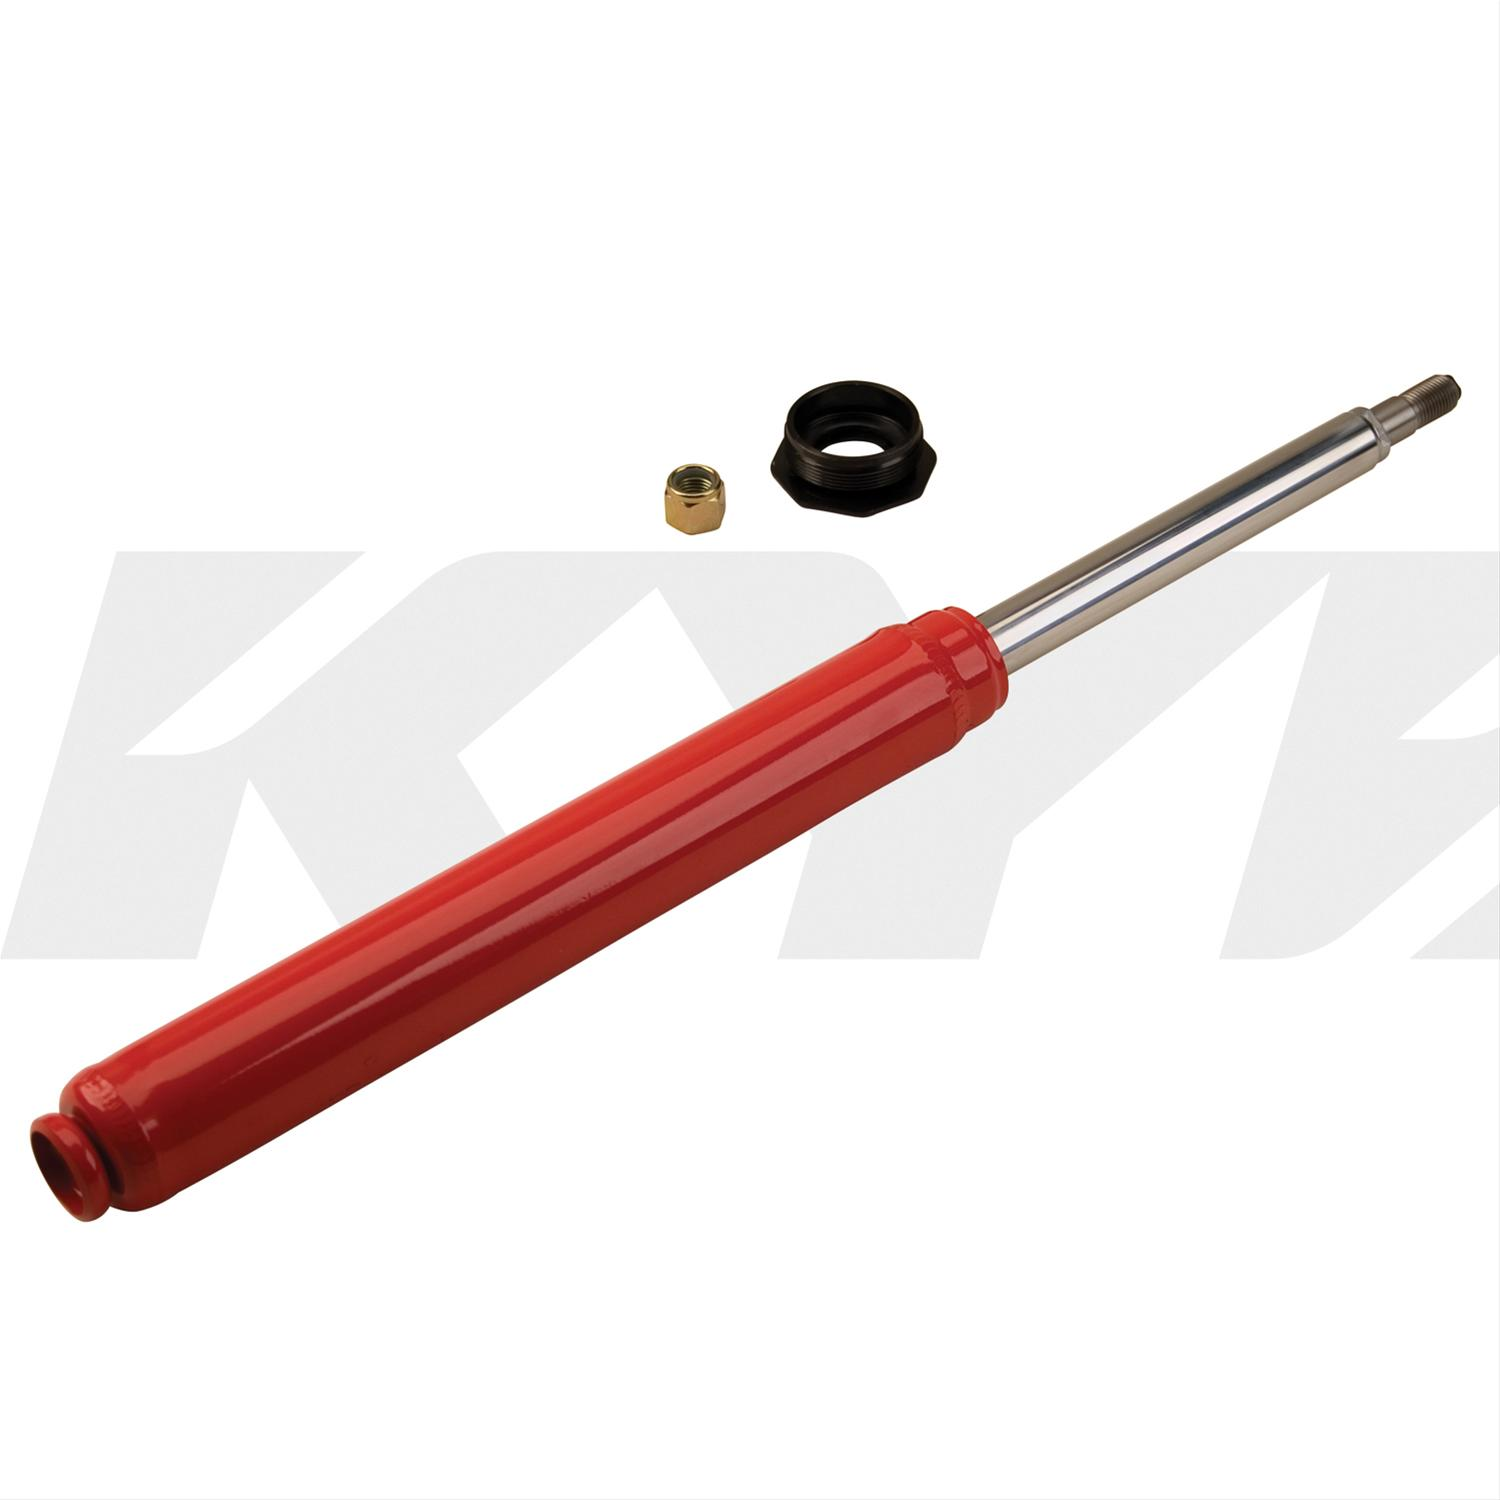 Toyota Celica 1995 1998 Excel G Struts: Two (2) KYB 765015 Shock/Strut AGX Twin-Tube Adjustable